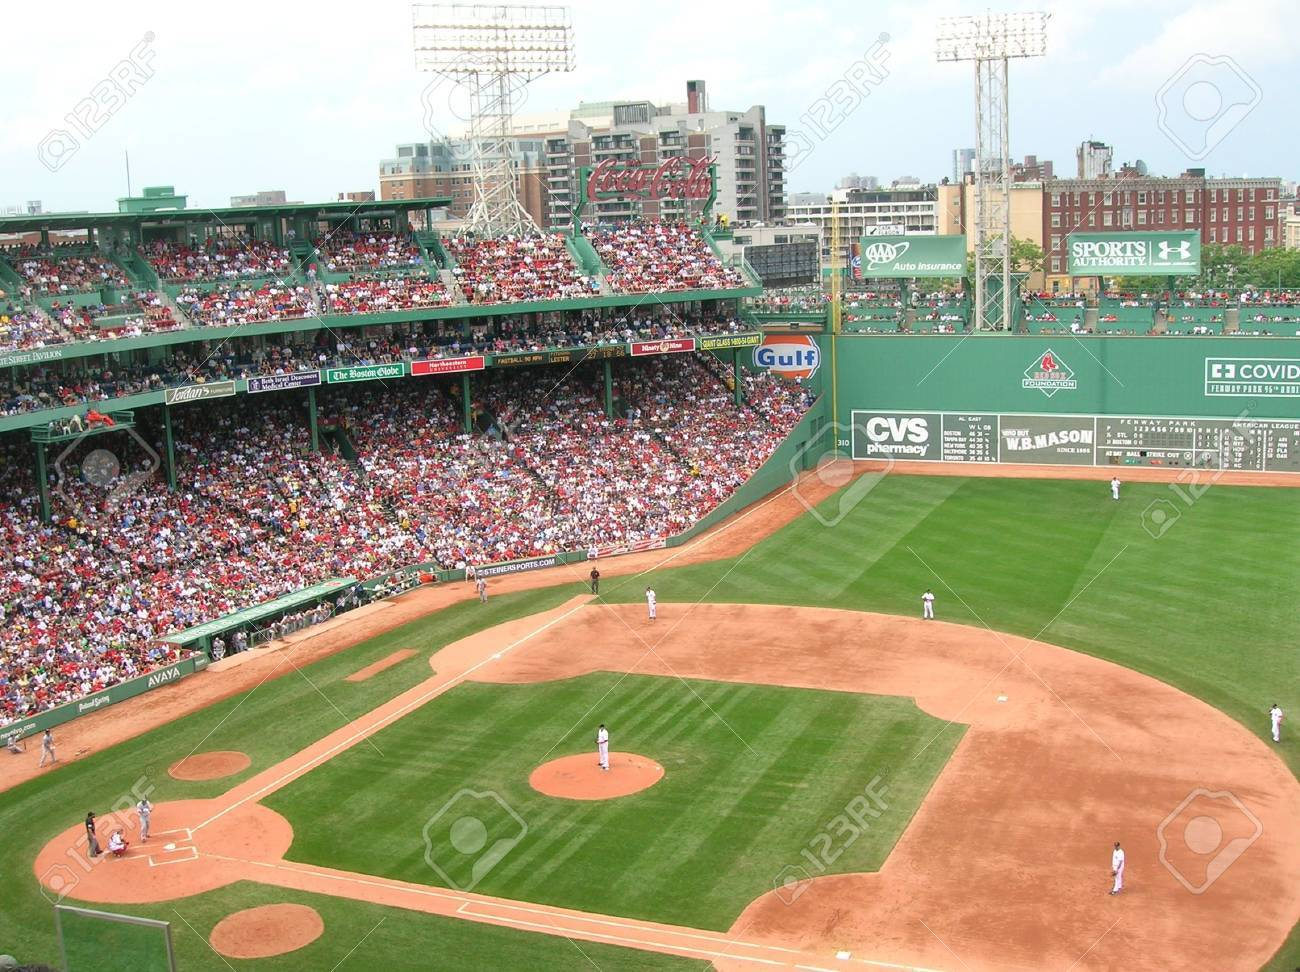 Boston, Massachusetts, USA - September 4th, 2009 - A Red Sox